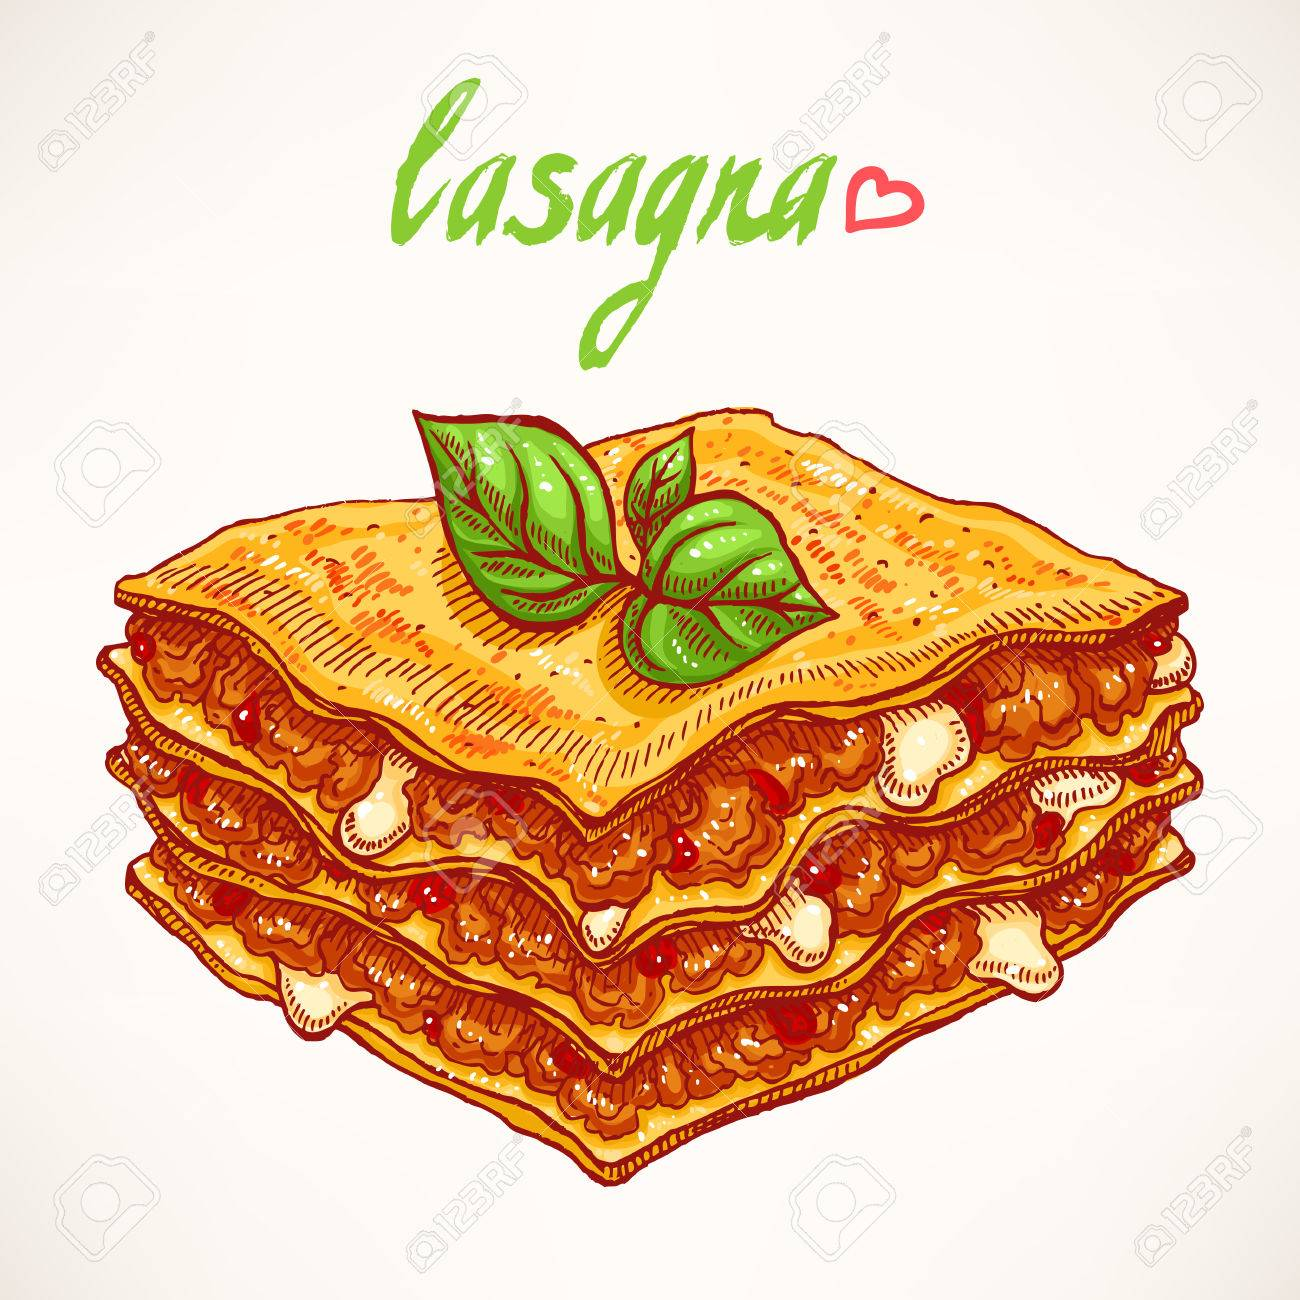 appetizing piece of lasagna with beef and basil leaves - 33070214